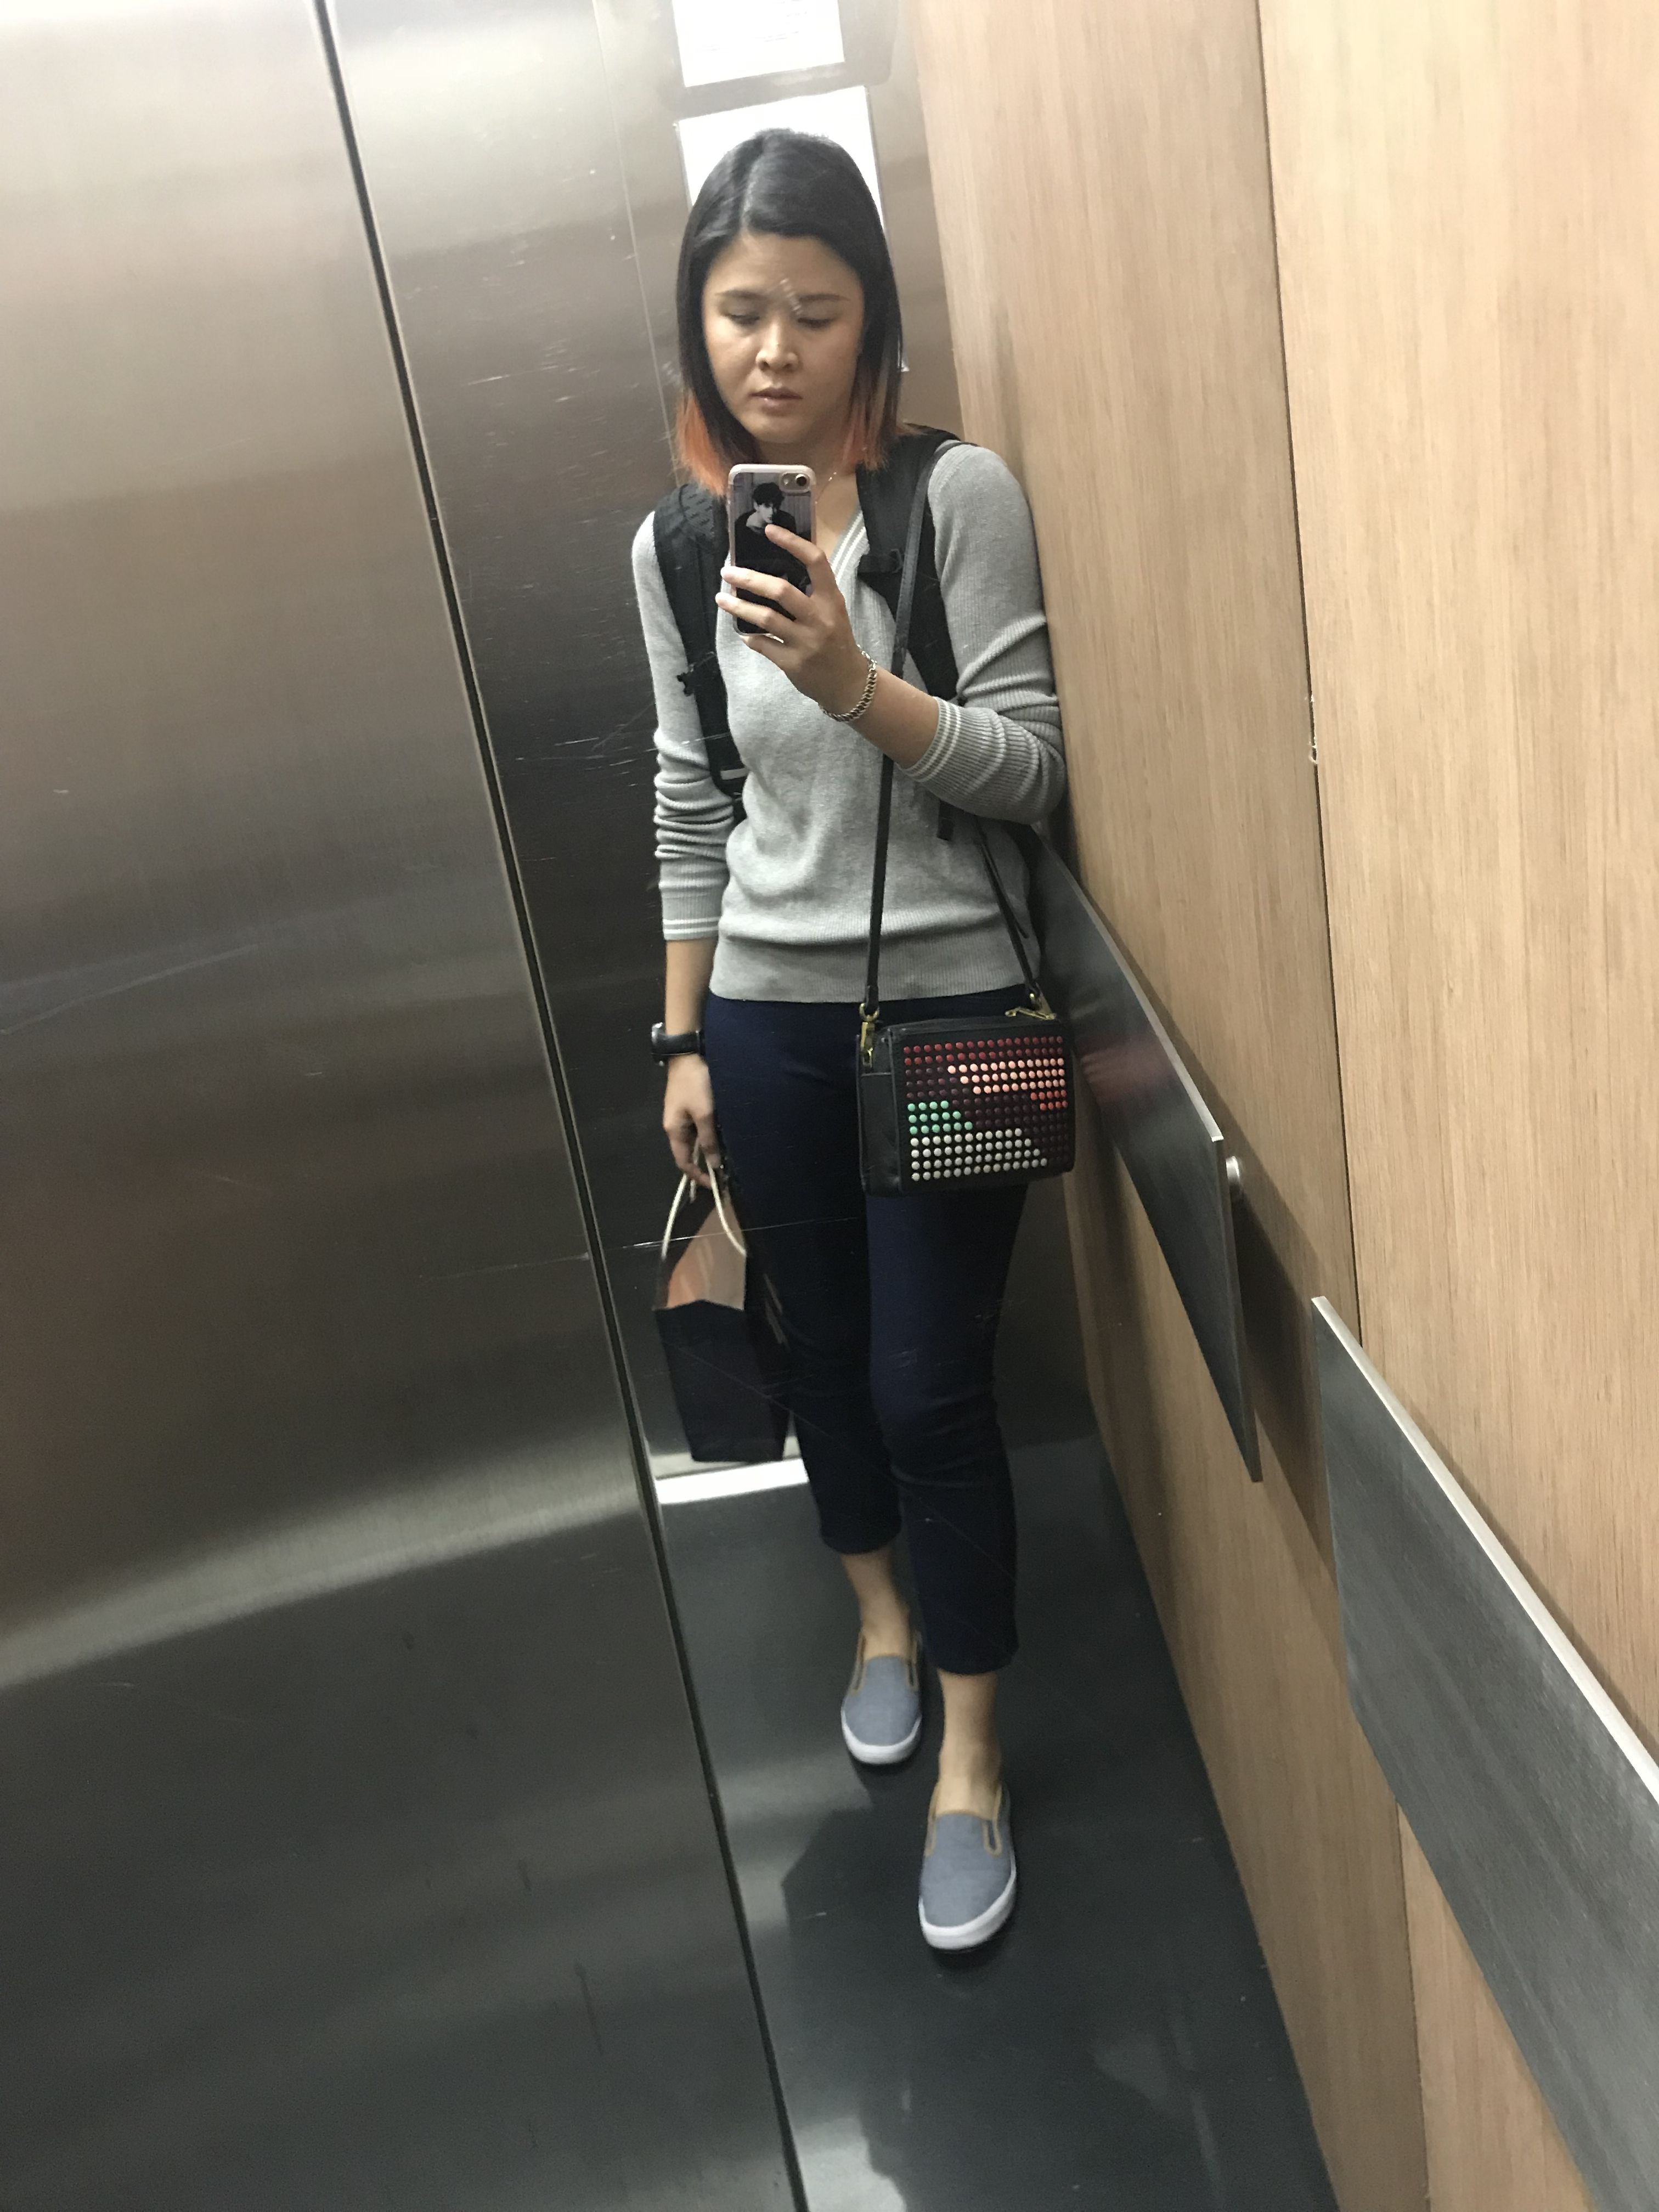 9517a1b275 OOTD: Long sweater and cropped pants - Uniqlo , Crossbody Sling - Fossil ,  Slip on - American Eagle, Backpack - Puma Stance hooded